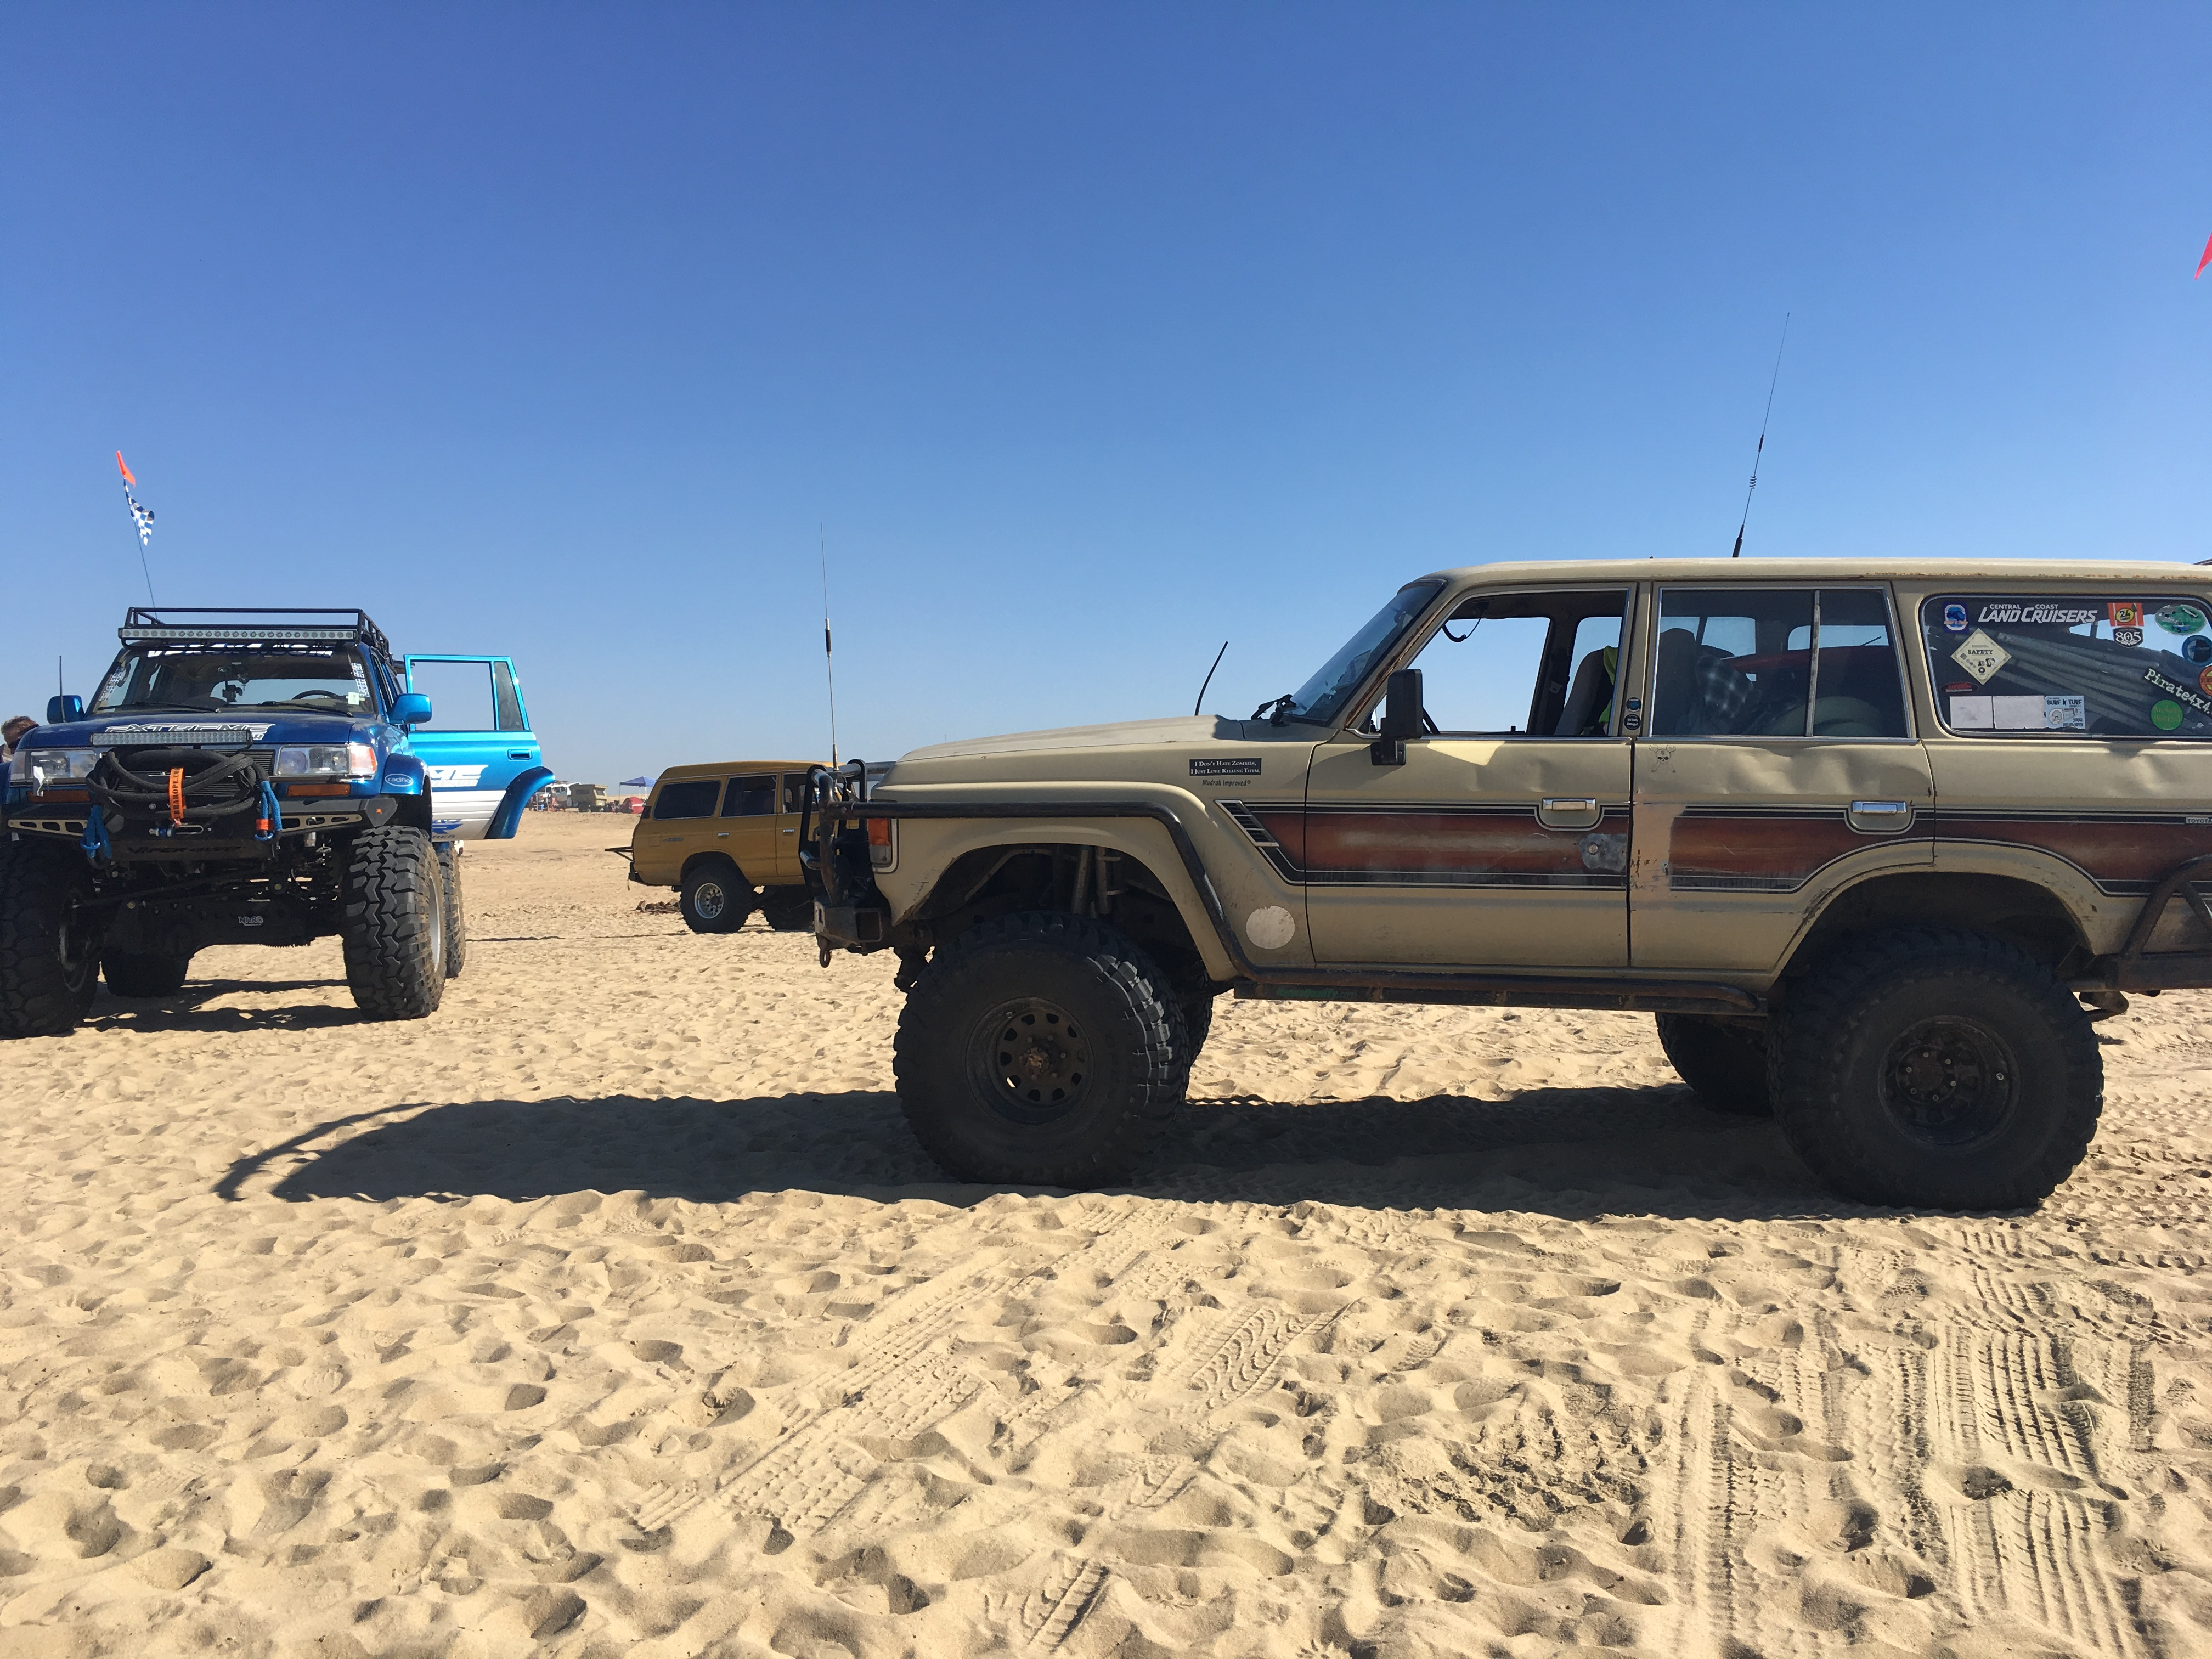 PismoJim's FJ60 Toyota Land Cruiser at Turf-N-Surf 2016